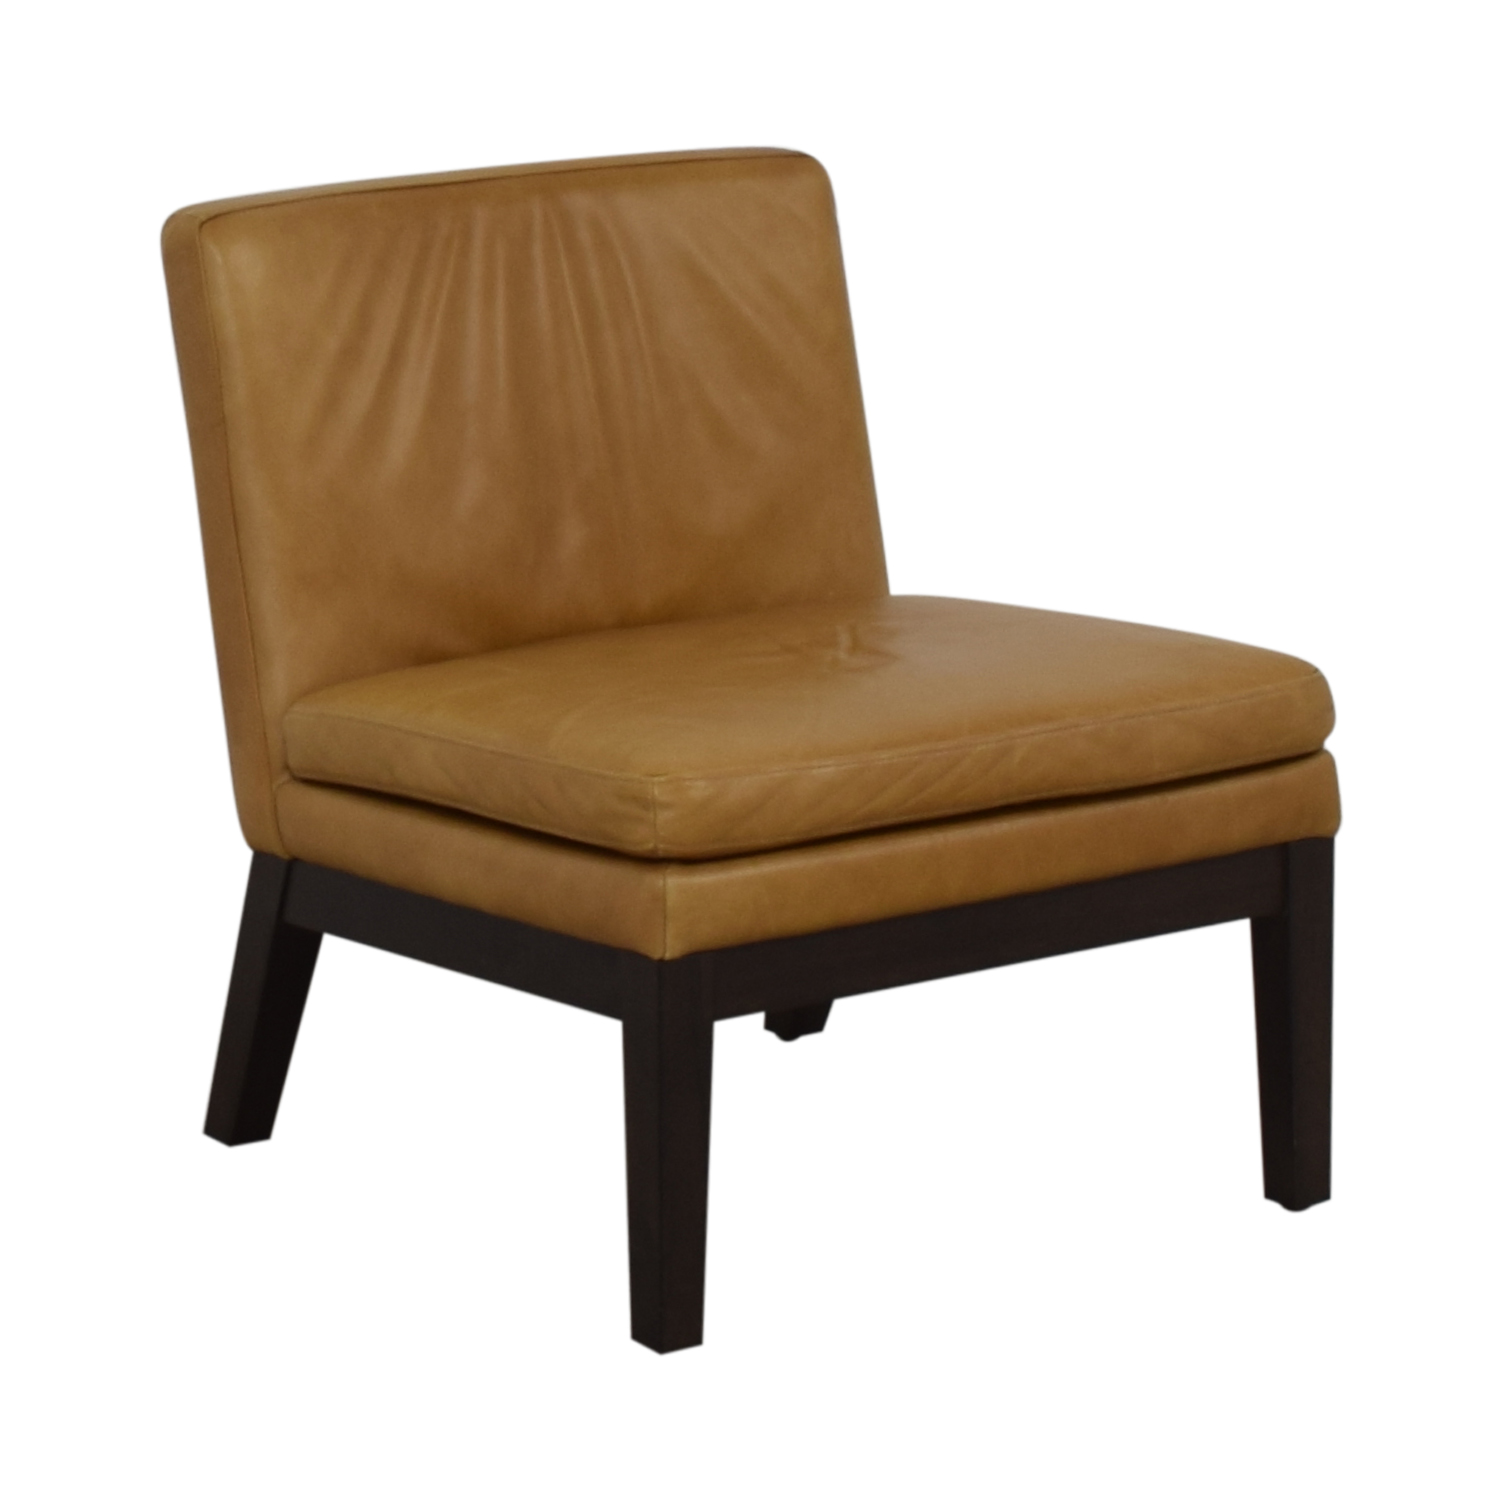 West Elm West Elm Orange Tan Leather Chair on sale